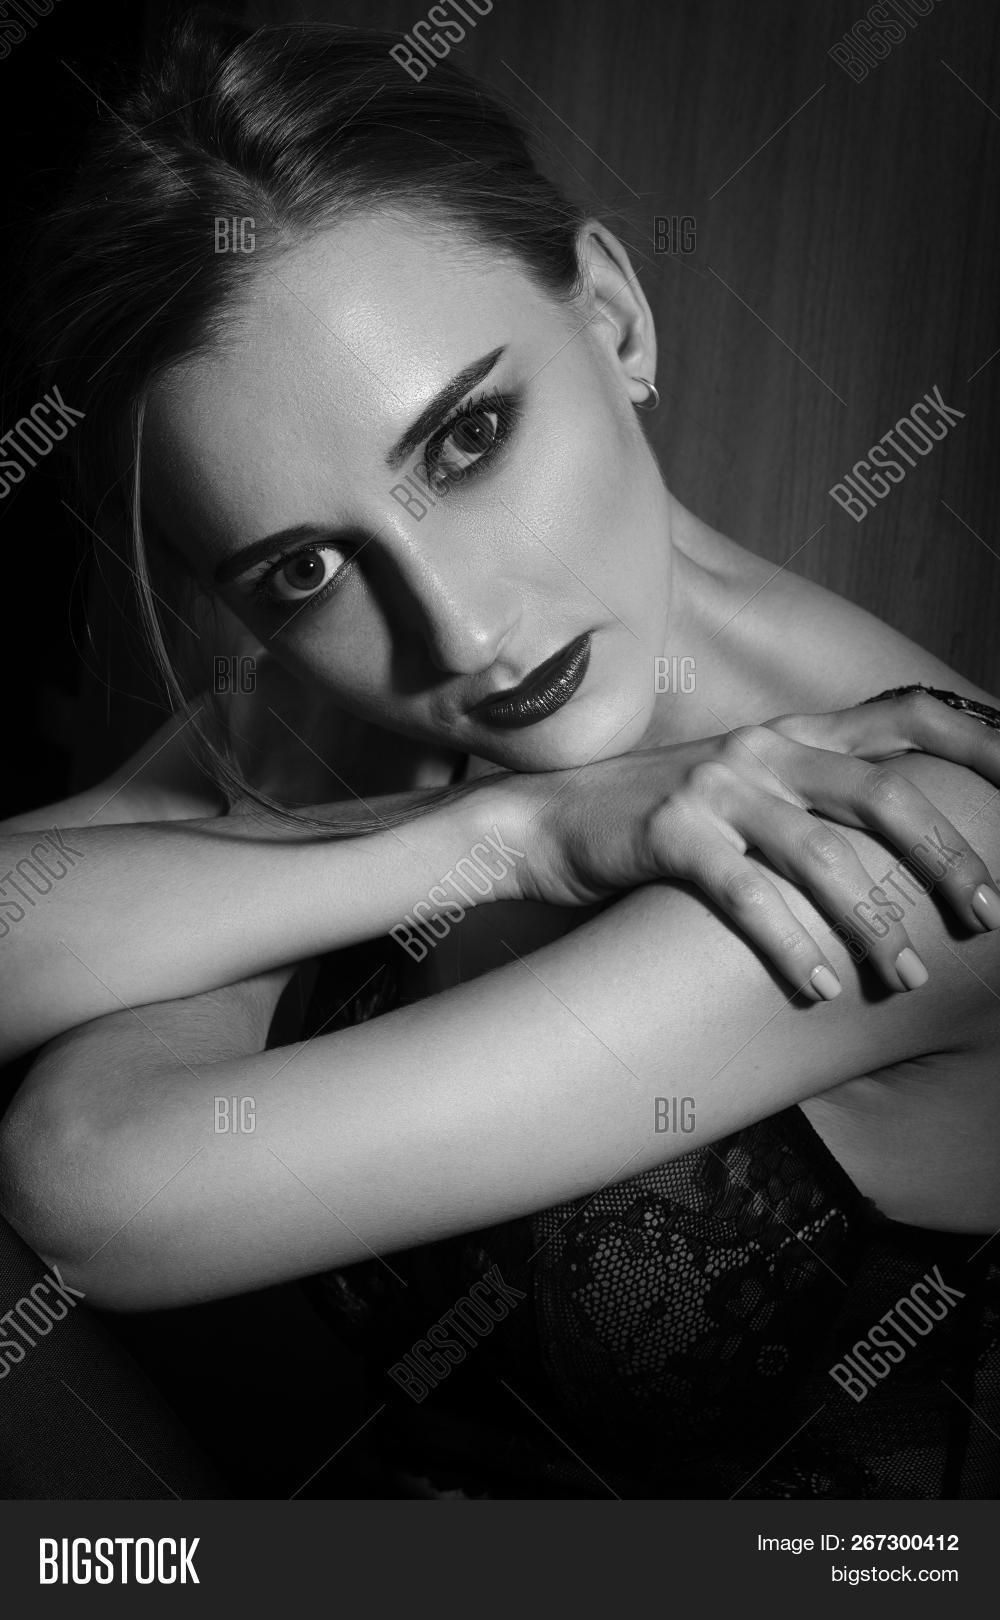 c9ace5b62 Sad Beautiful Young Woman In Lingerie Looking At Camera In Dark